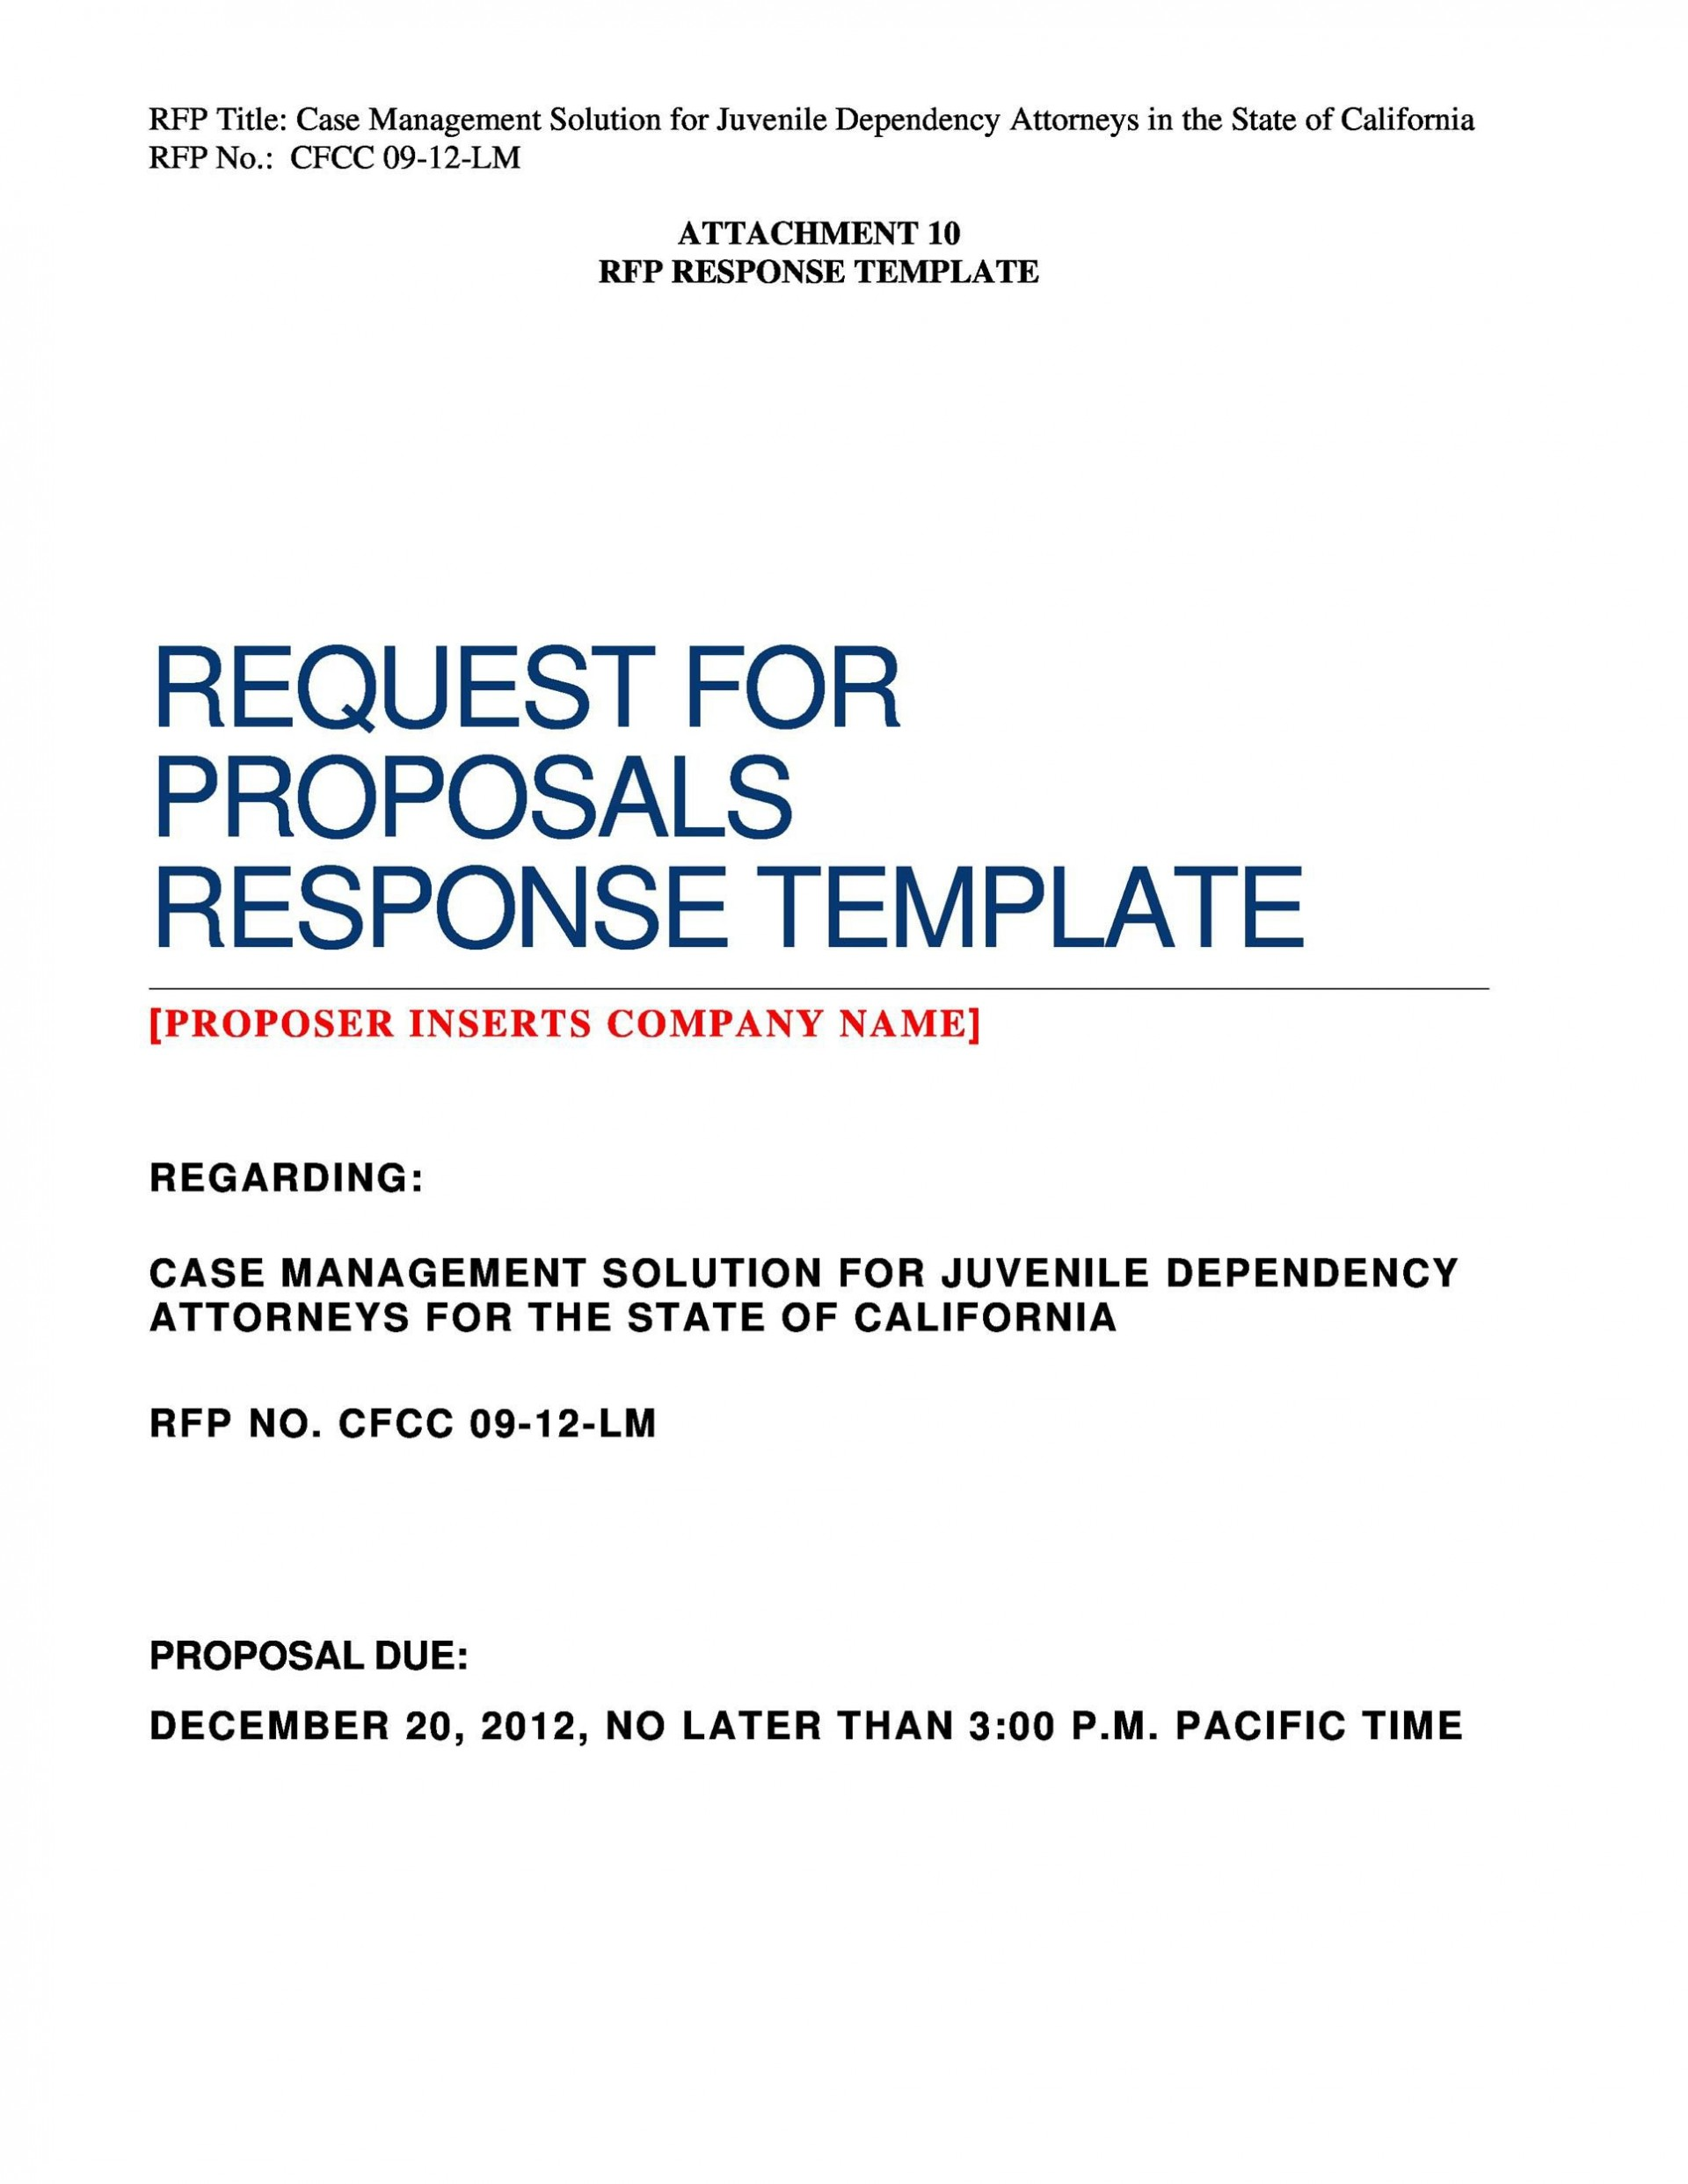 005 Imposing Request For Proposal Response Word Template Design 1920